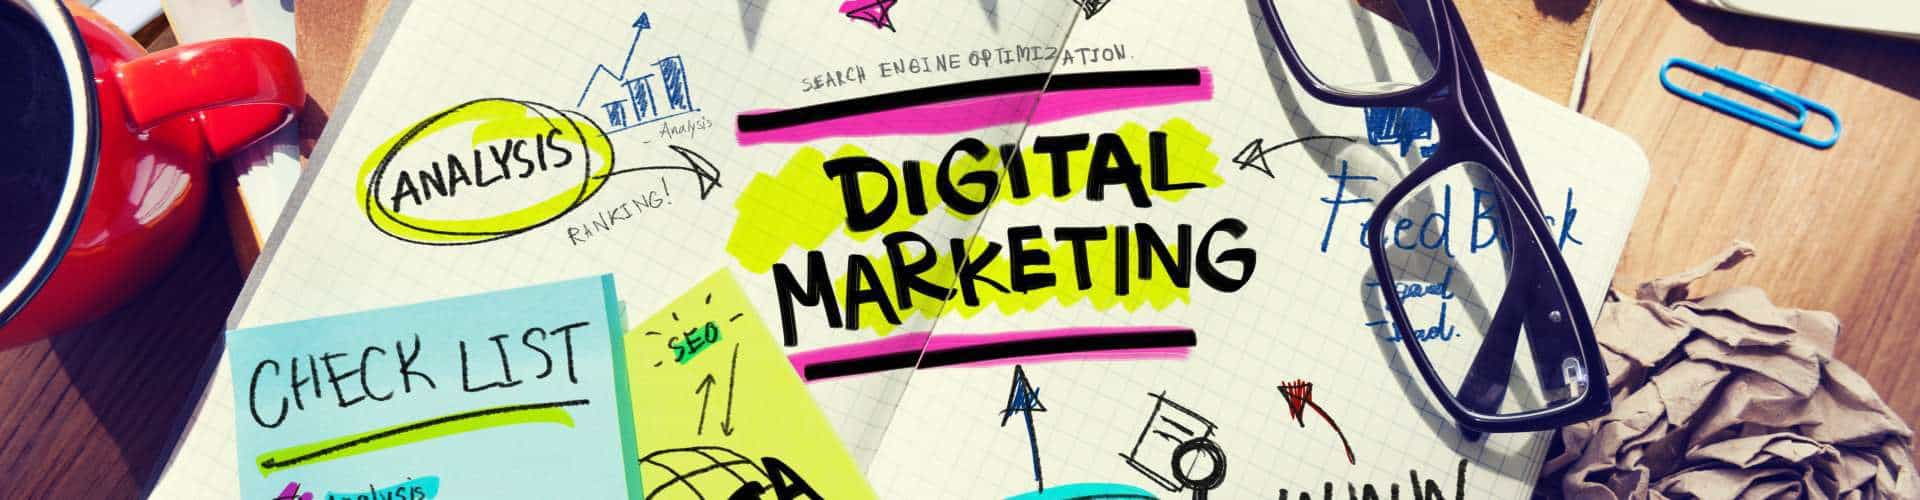 CX3 Digital Marketing Blog